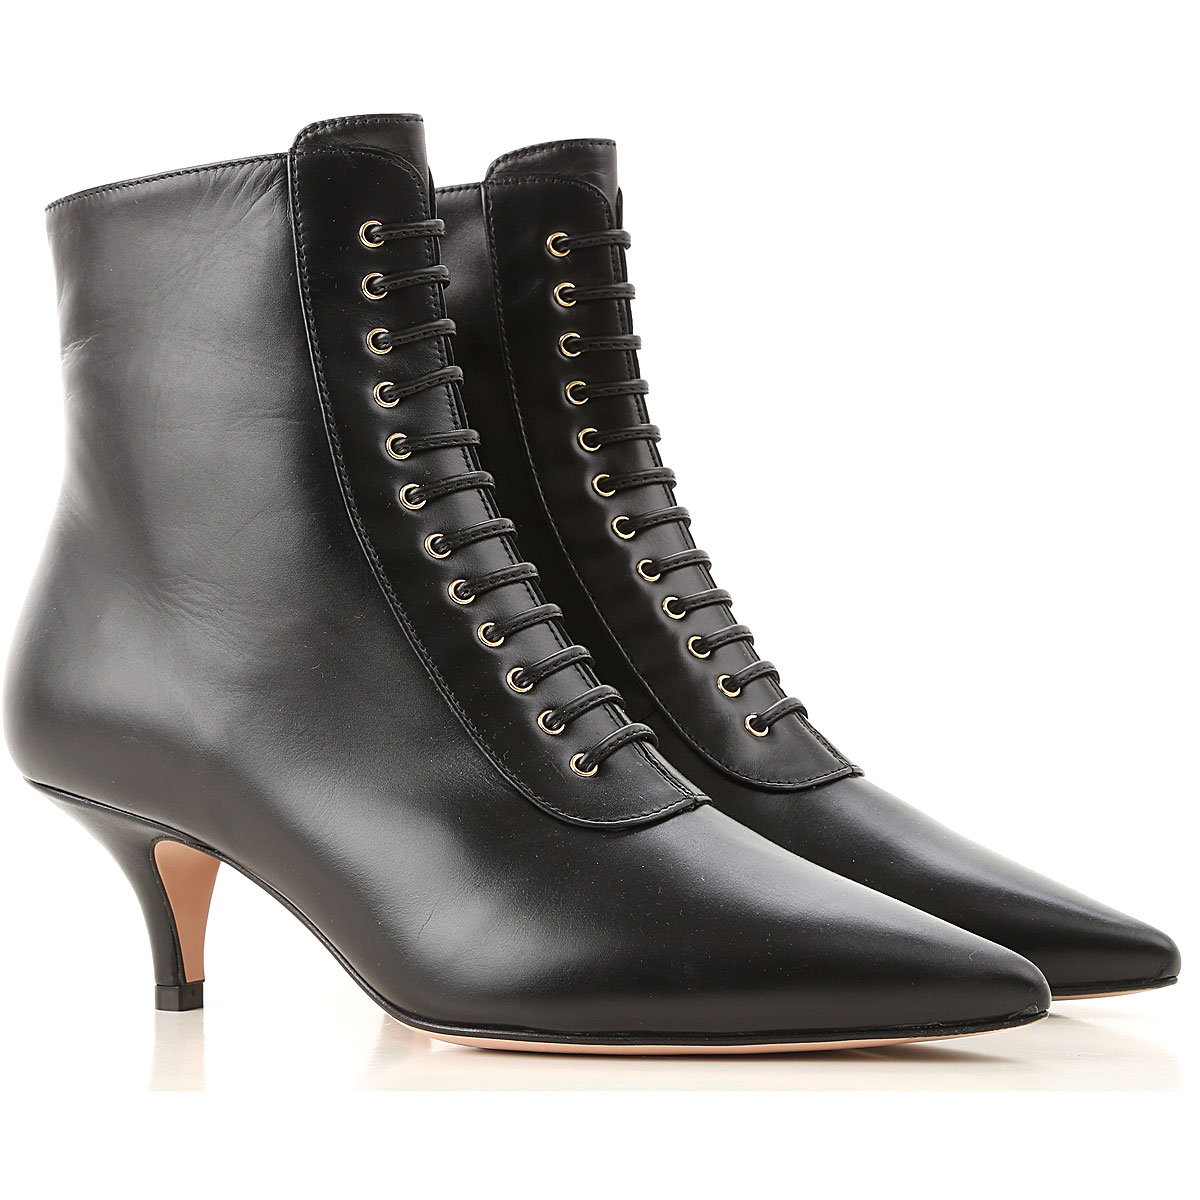 Roberto Festa Boots for Women, Booties On Sale, Black, Leather, 2019, 6 7 8 9